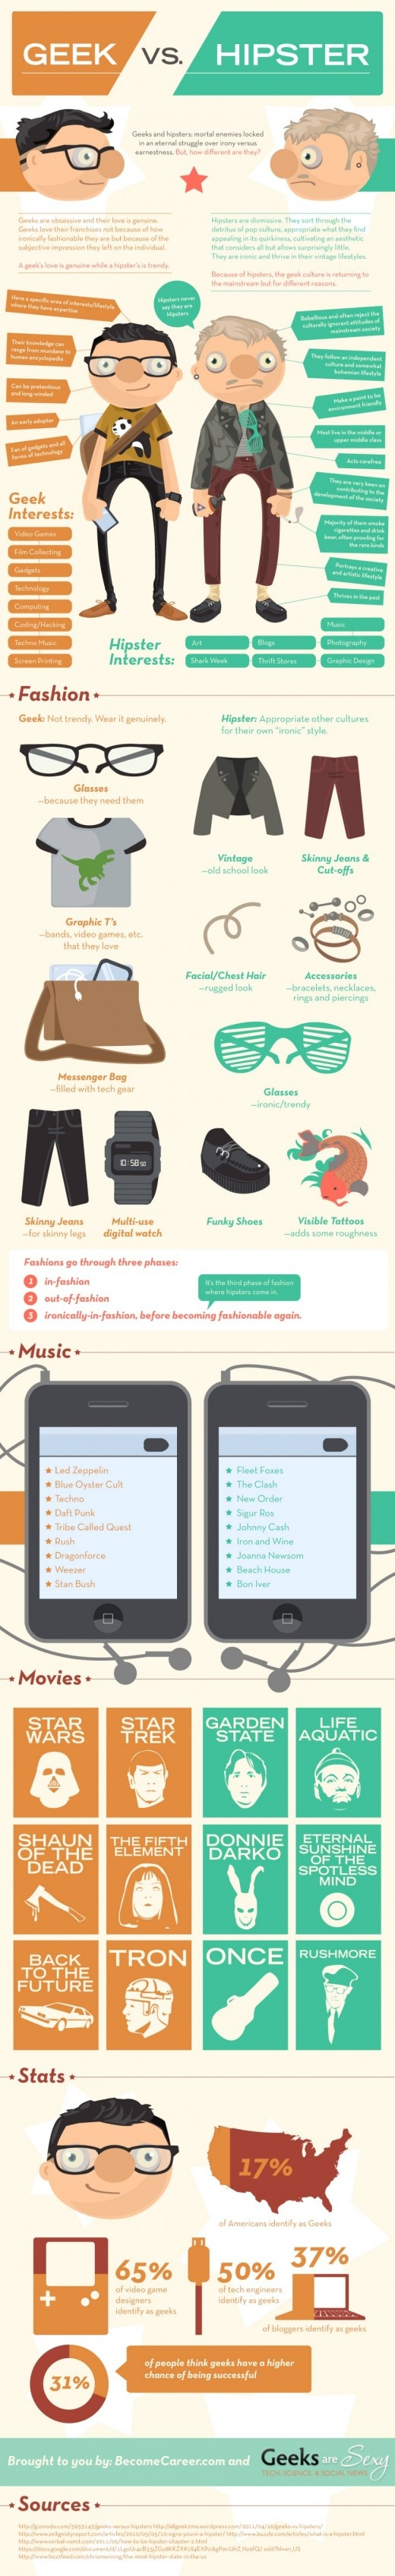 According to this I'm a hipster geek?